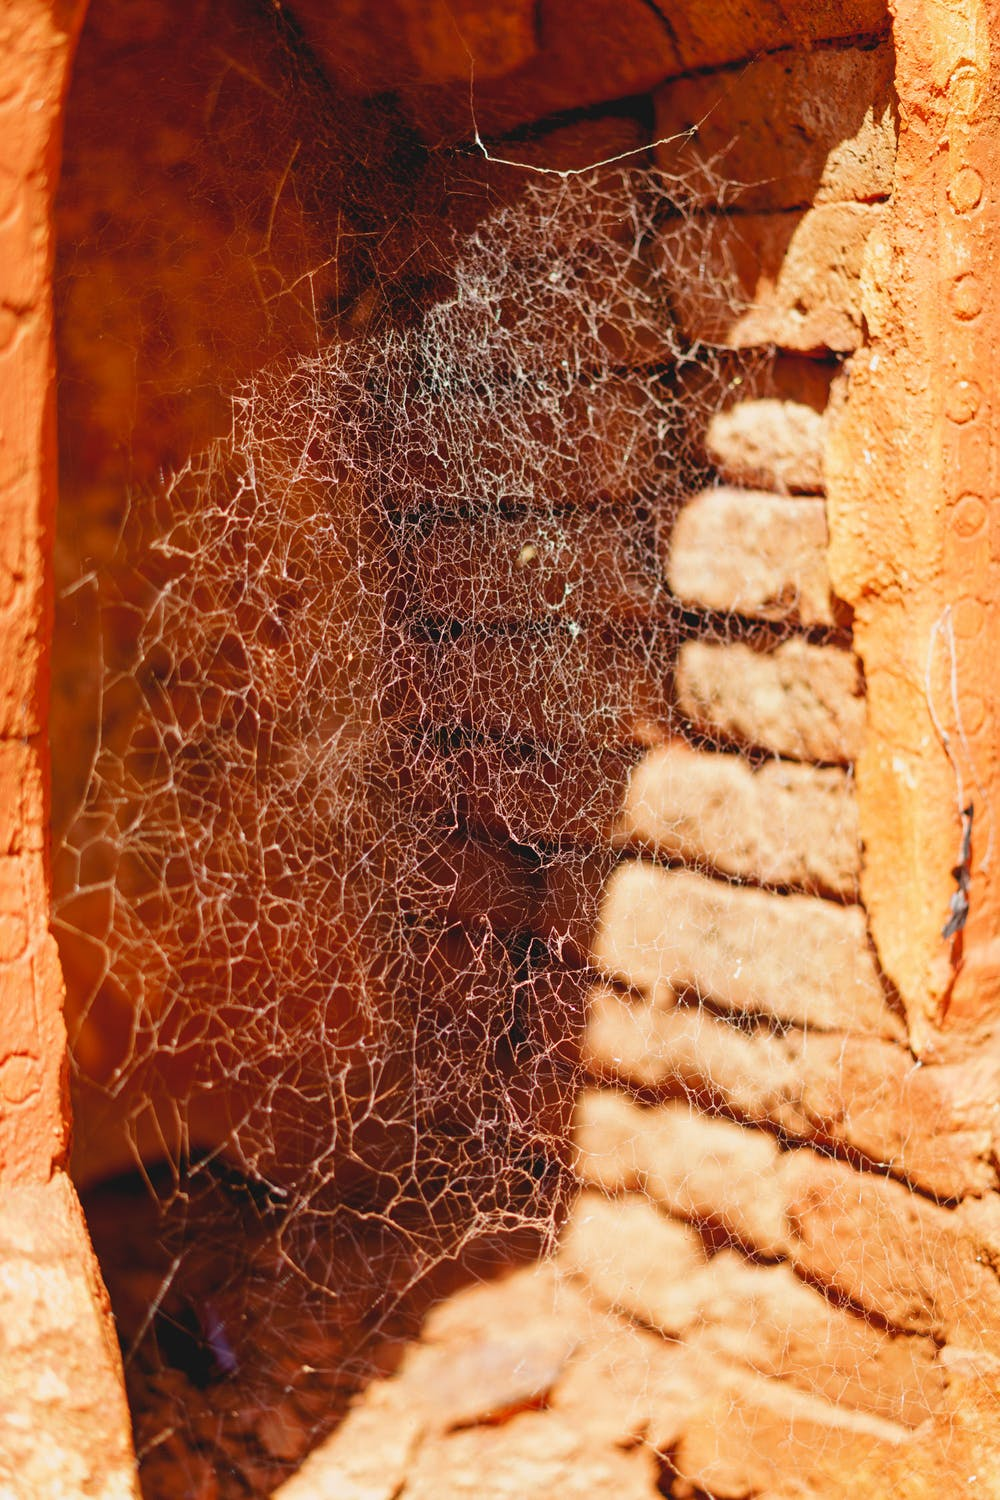 Spider web inside an ancient pagoda in the village of Indein Myanmar